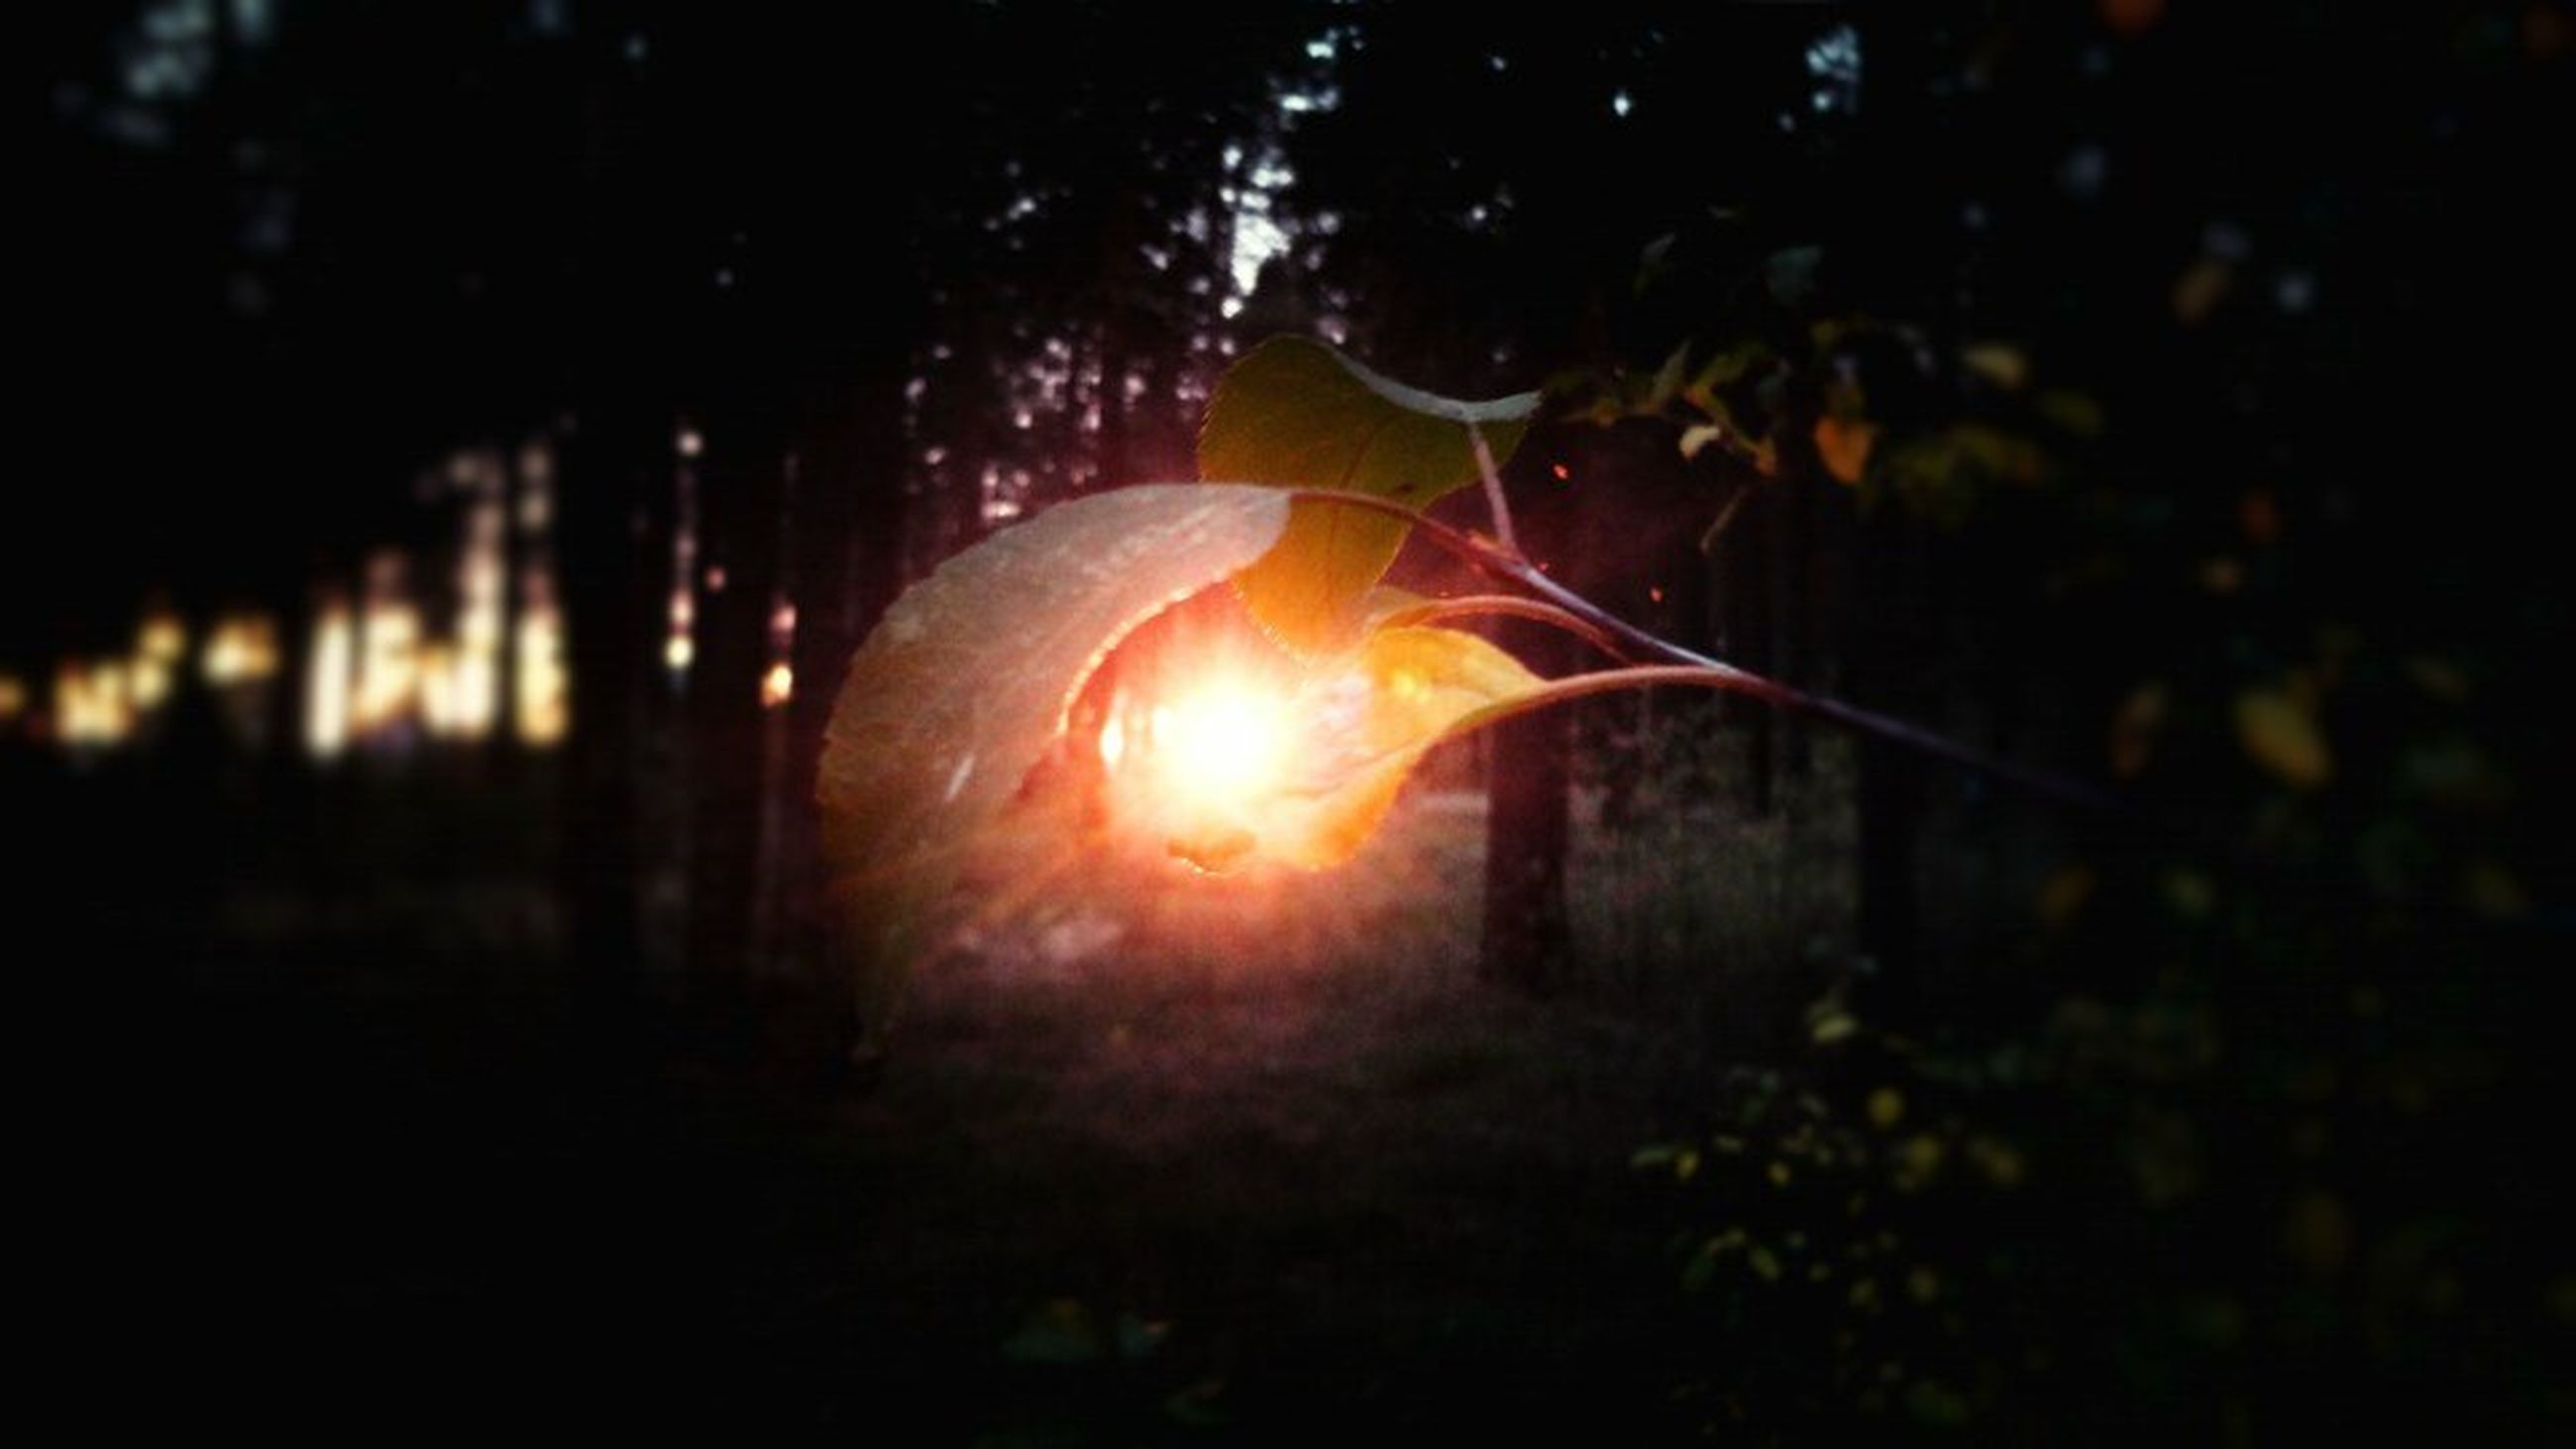 sunset, orange color, sun, glowing, lens flare, night, sunlight, close-up, sunbeam, focus on foreground, nature, outdoors, tree, beauty in nature, no people, burning, silhouette, illuminated, back lit, plant